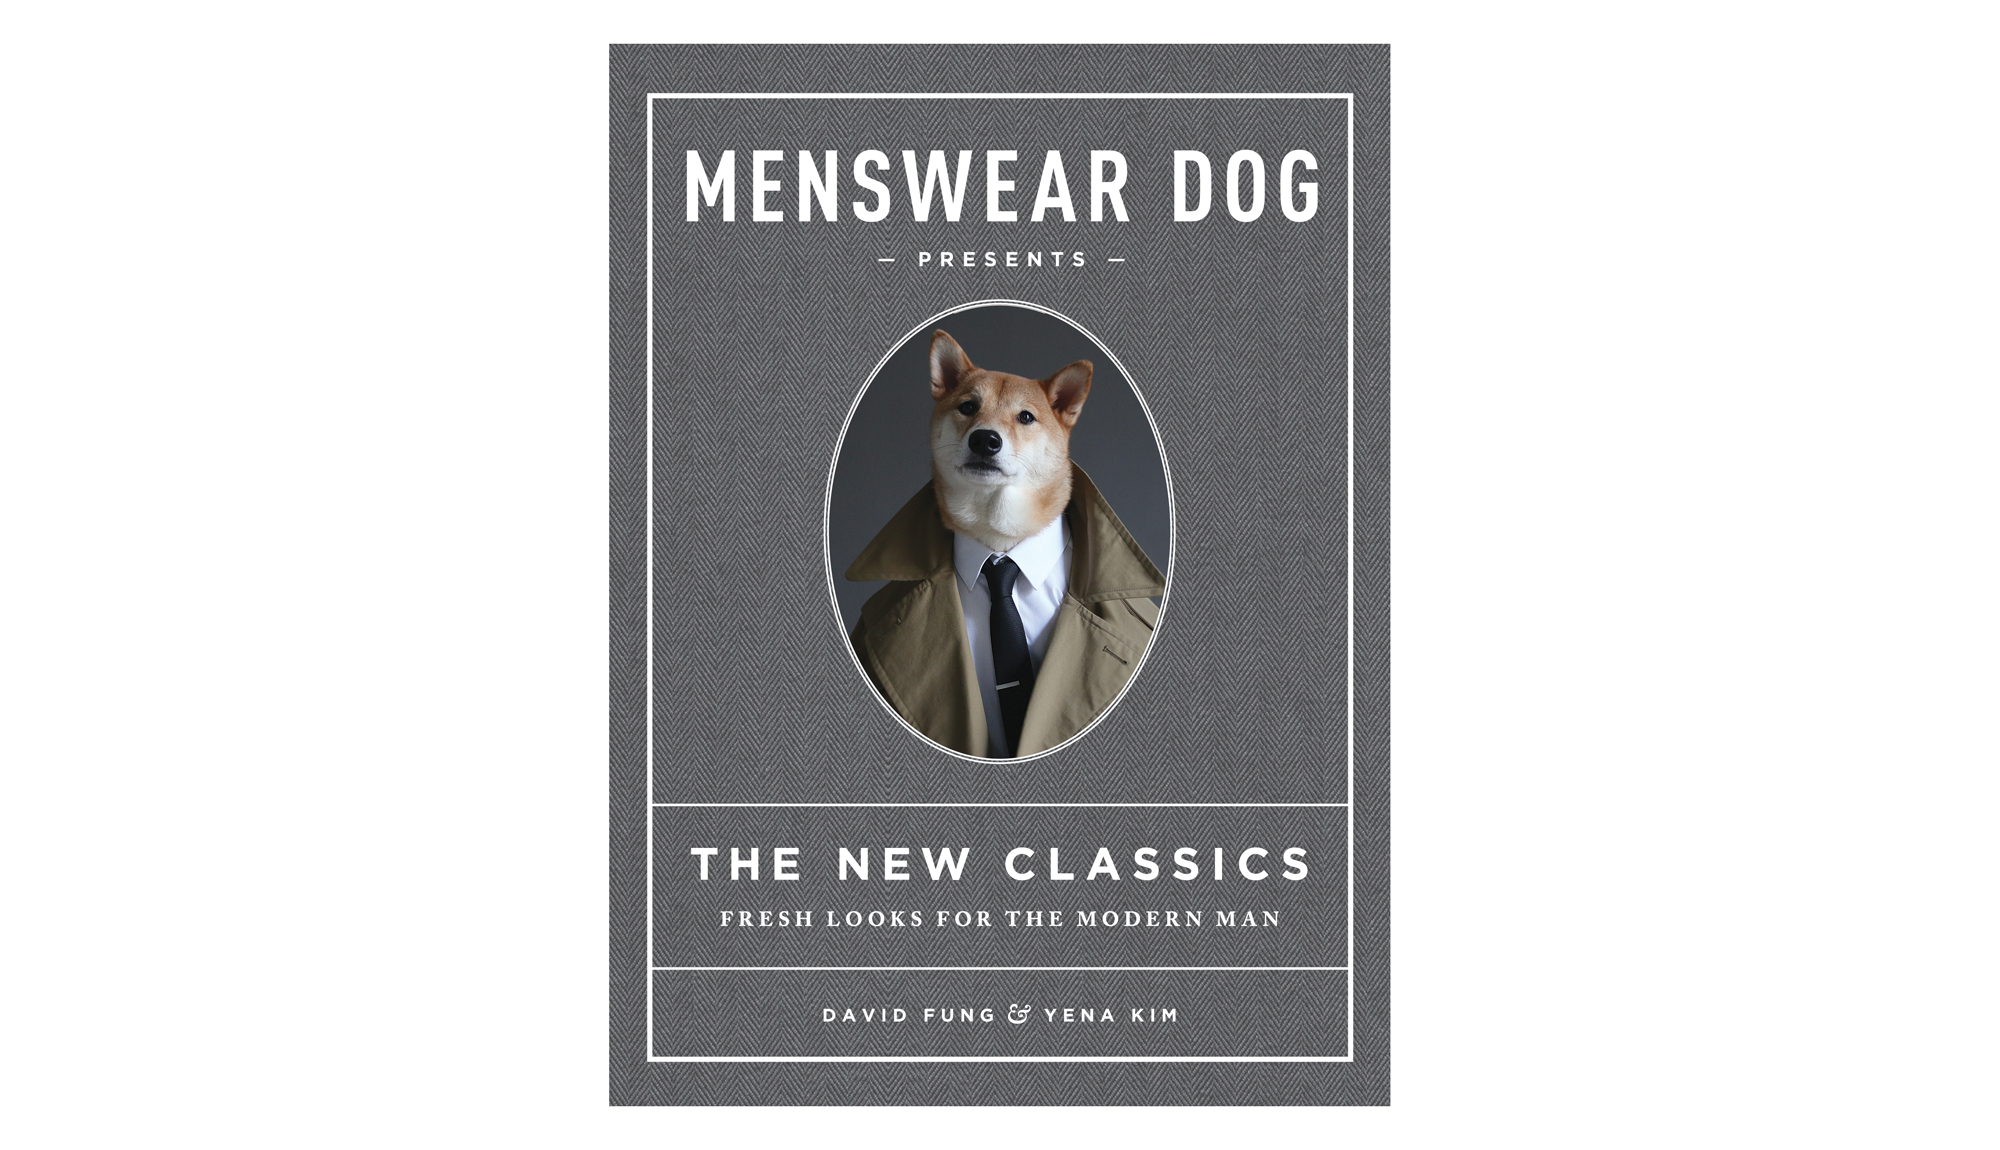 Menswear Dog Presents the New Classics: Fresh Looks for the Modern Man, by David Fung and Yena Kim